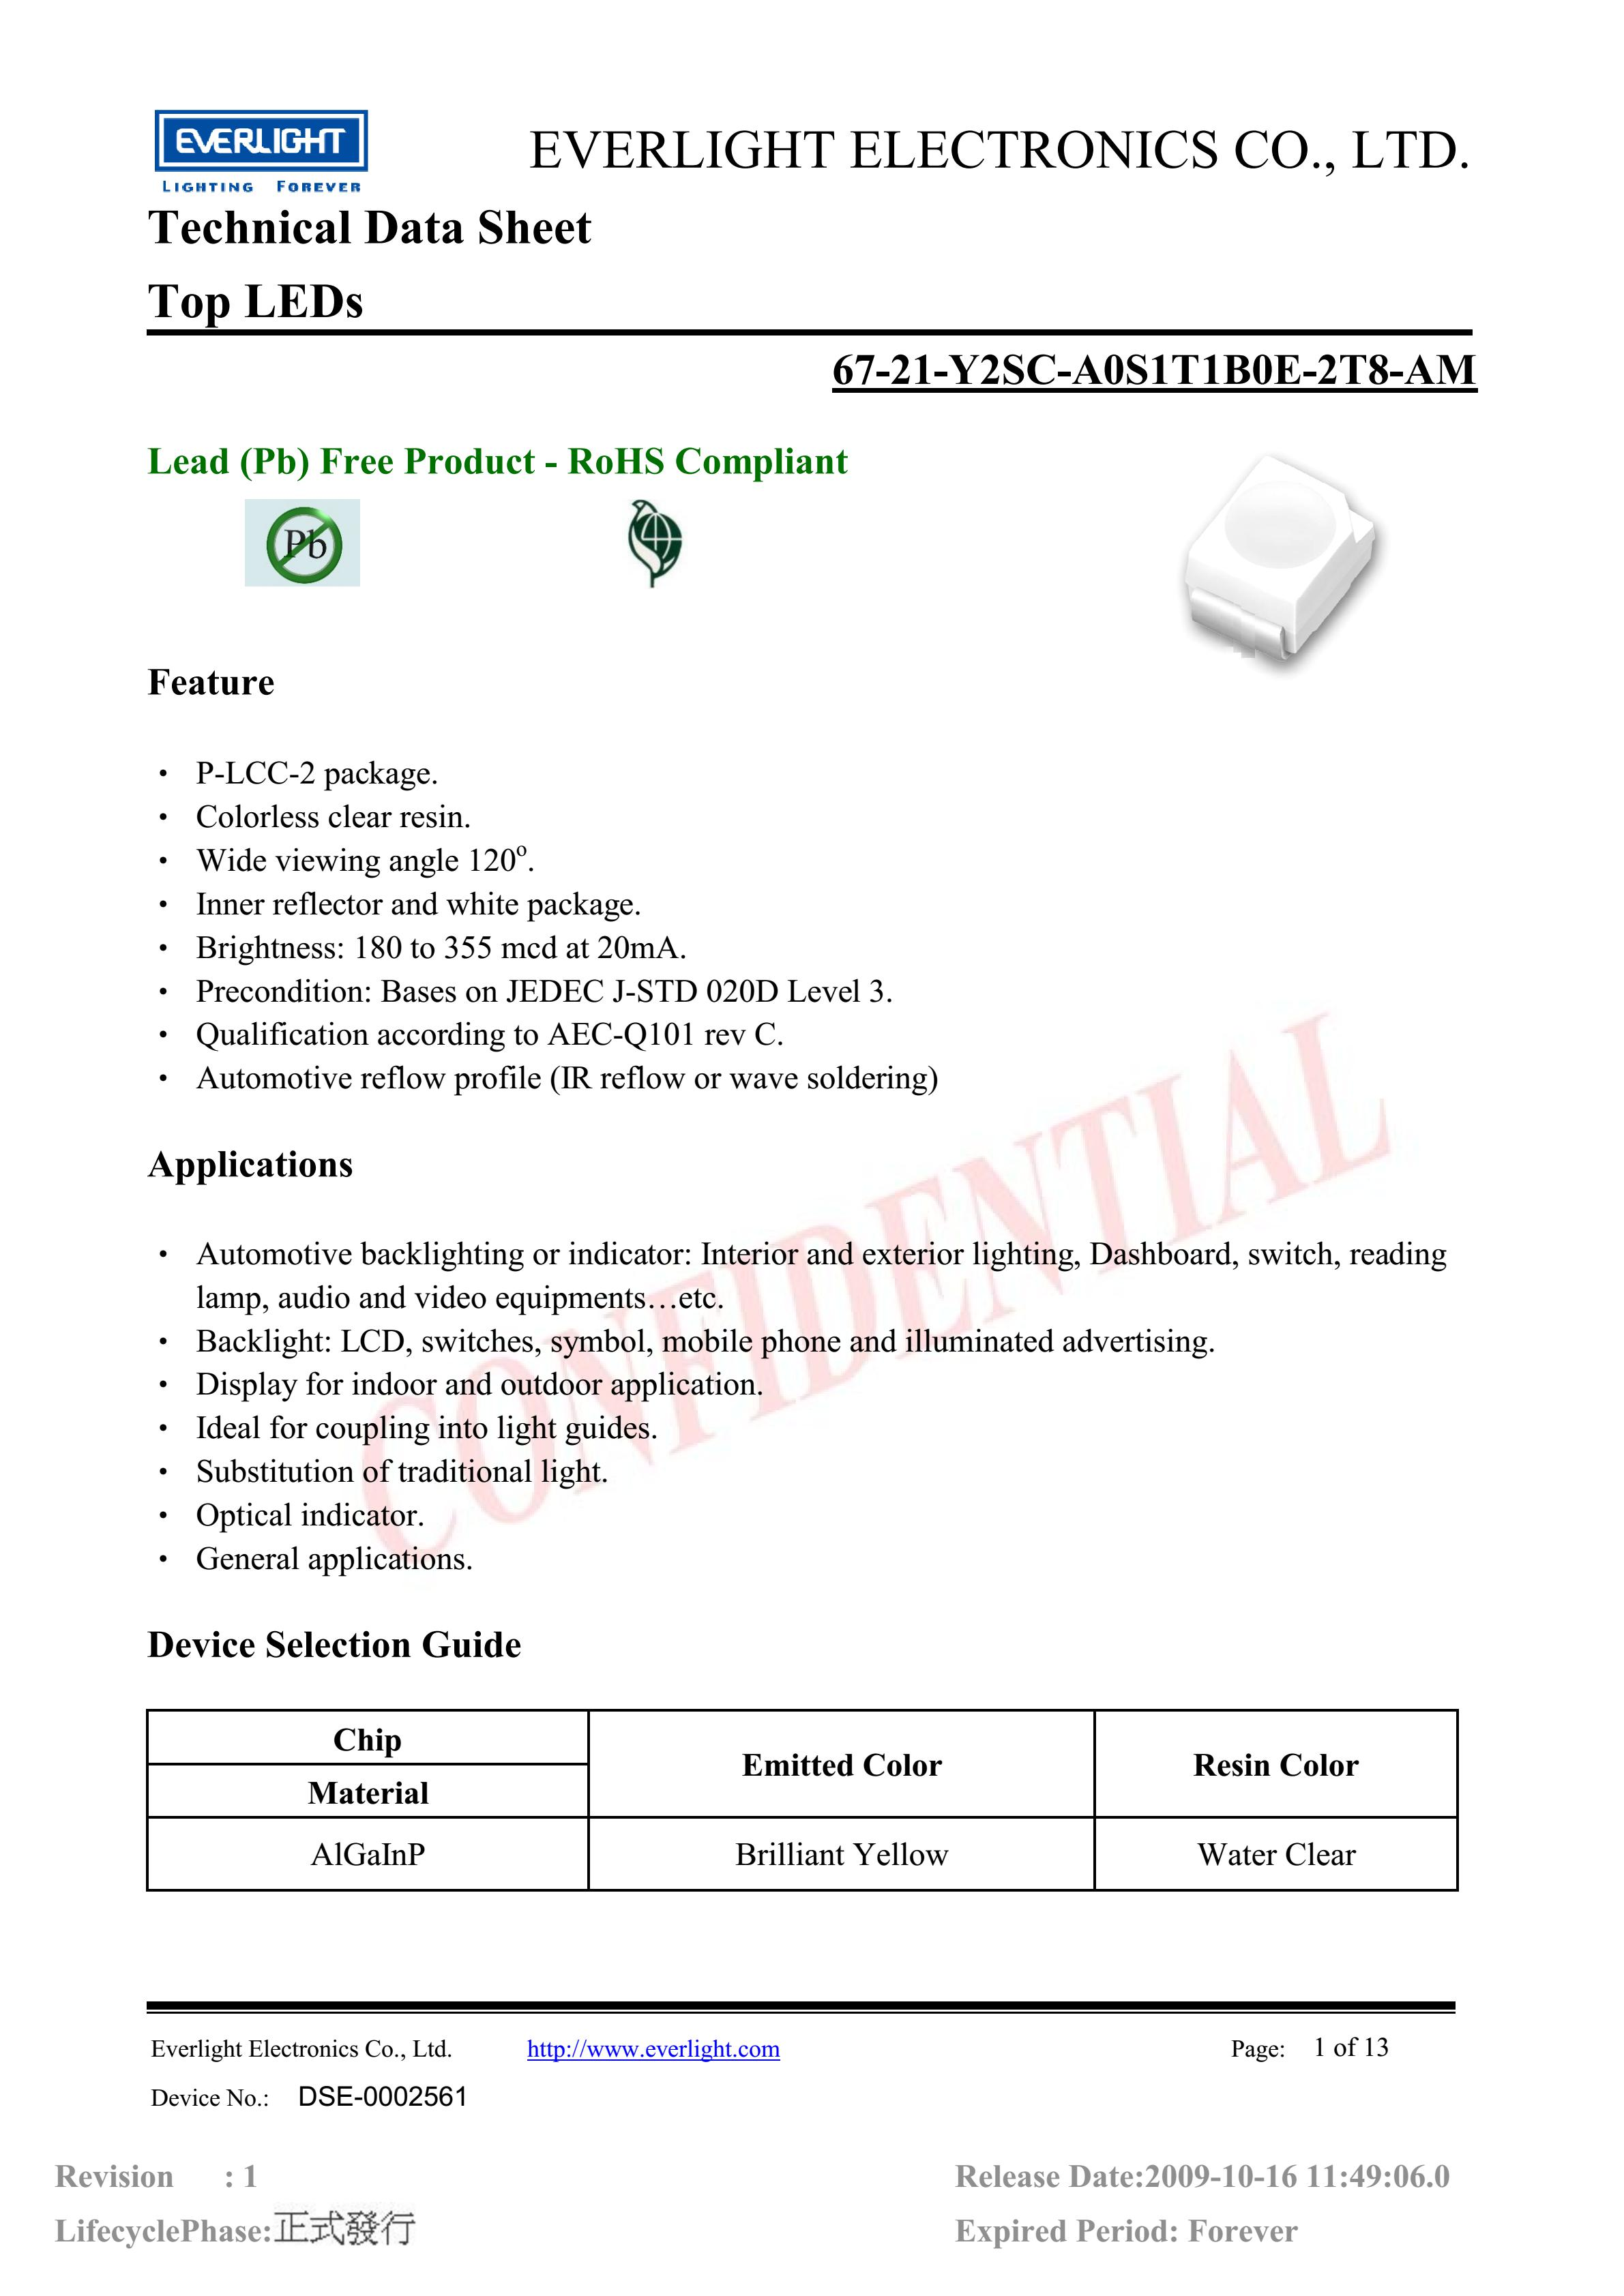 everlight 3528 Car lamp beads 67-21-Y2SC-A0S1T1B0E-2T8-AM Datasheet